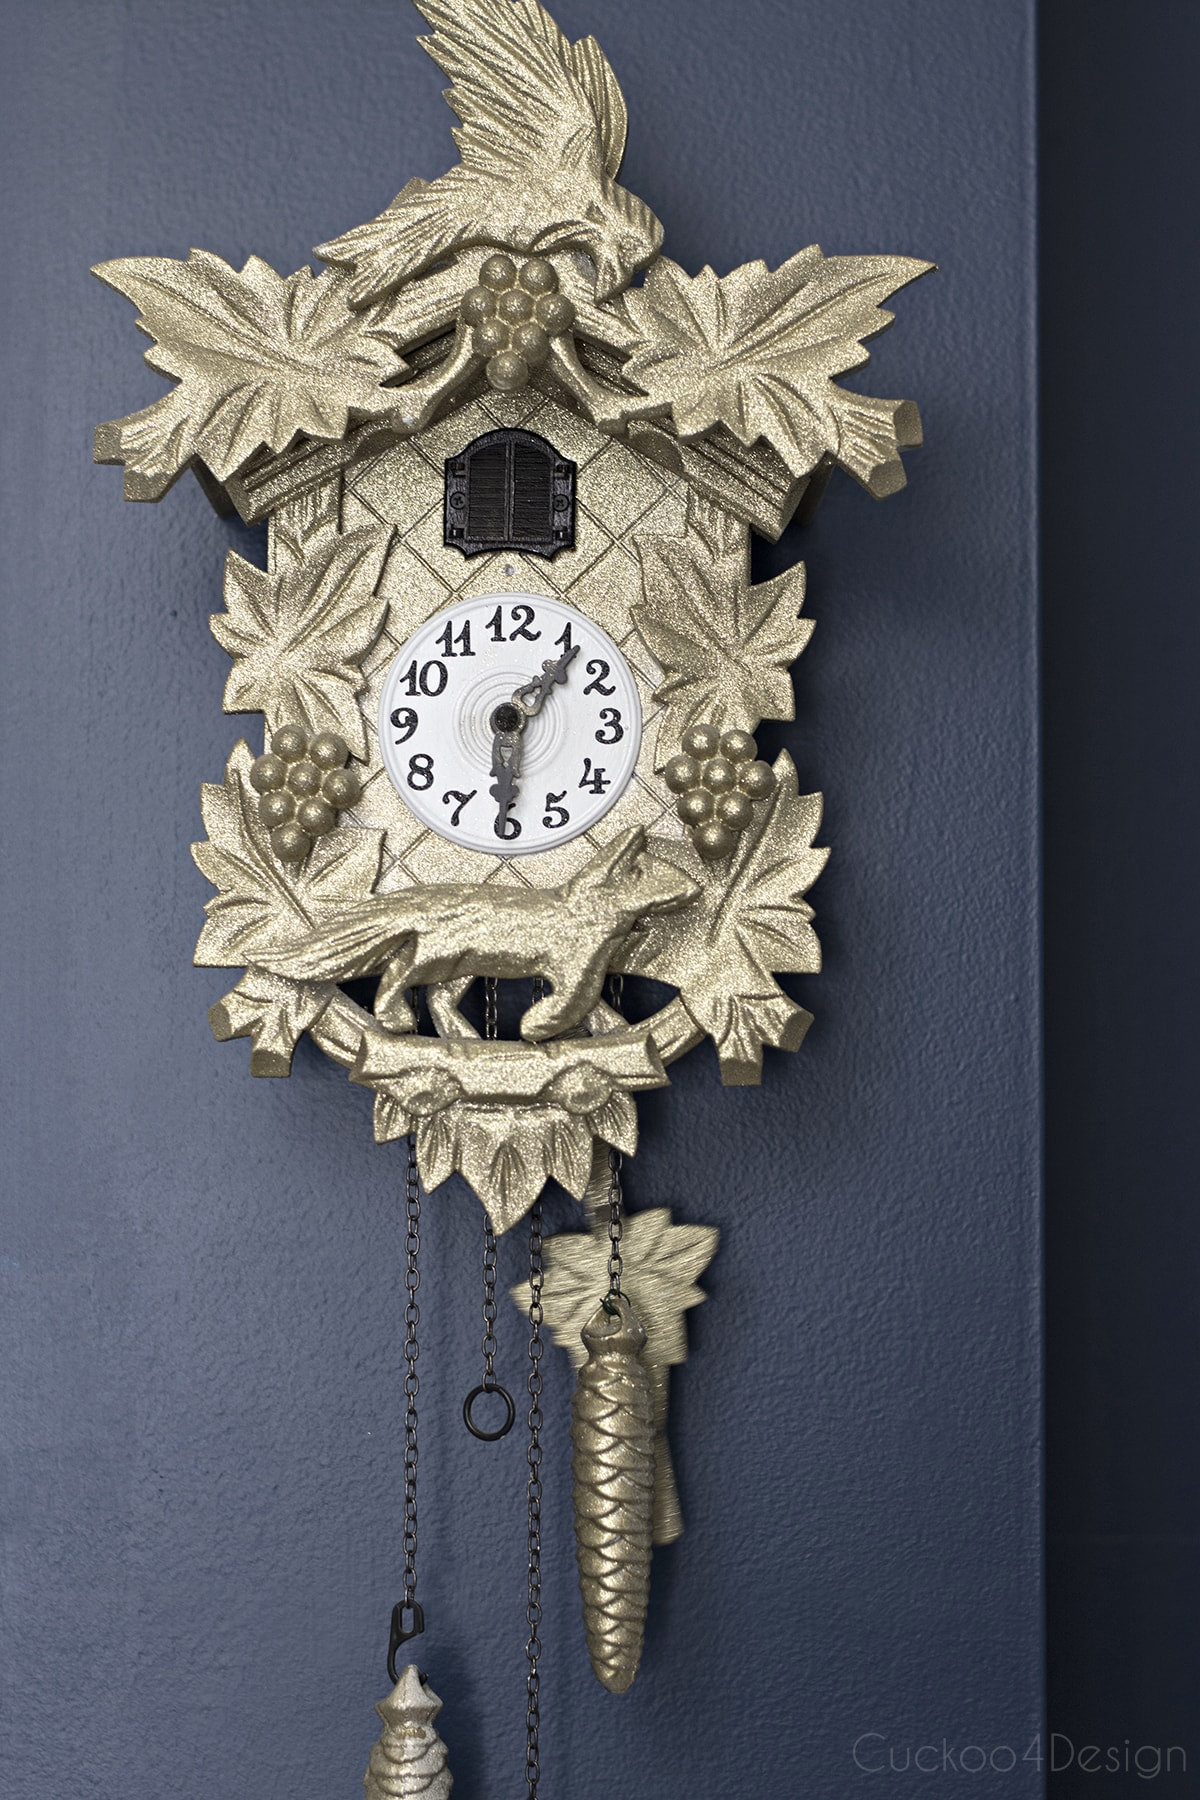 gold sparkly cuckoo clock on dark blue walls